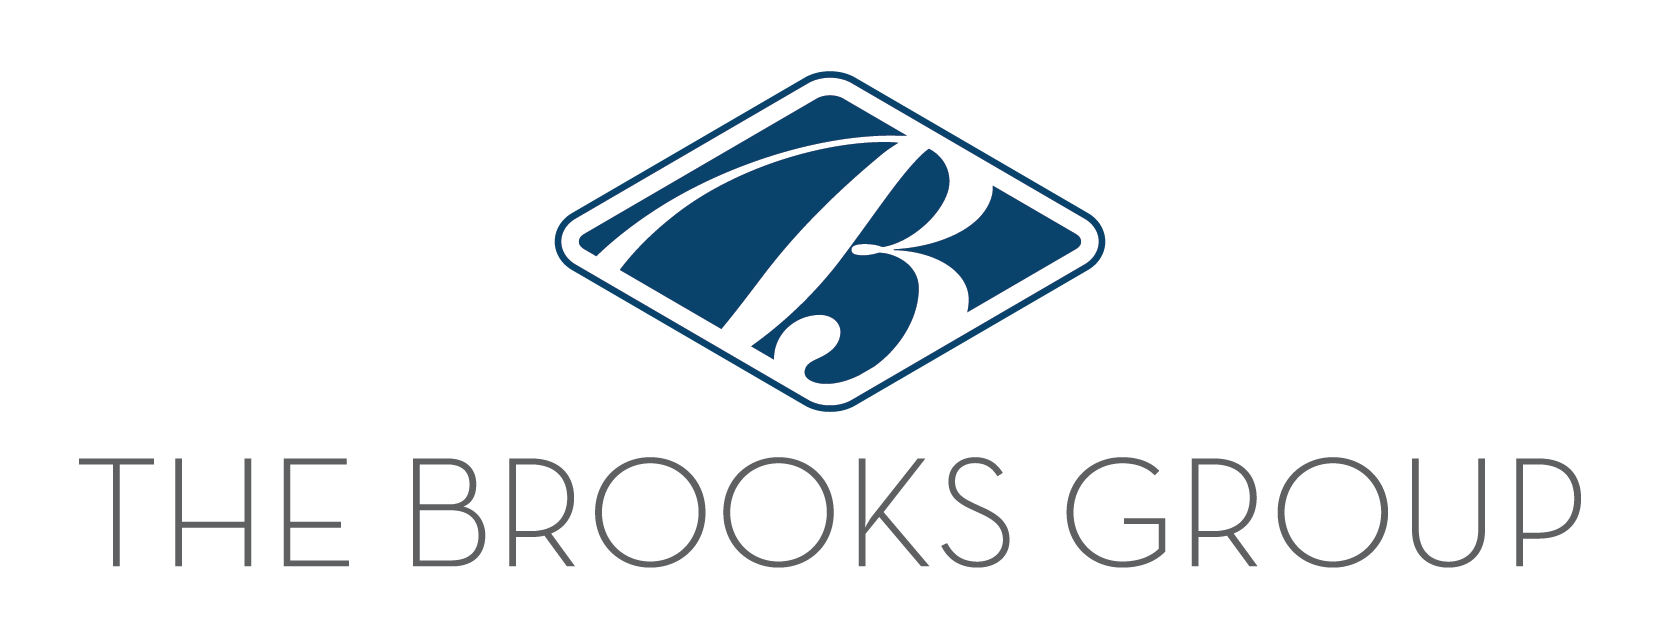 The Brooks Group.png